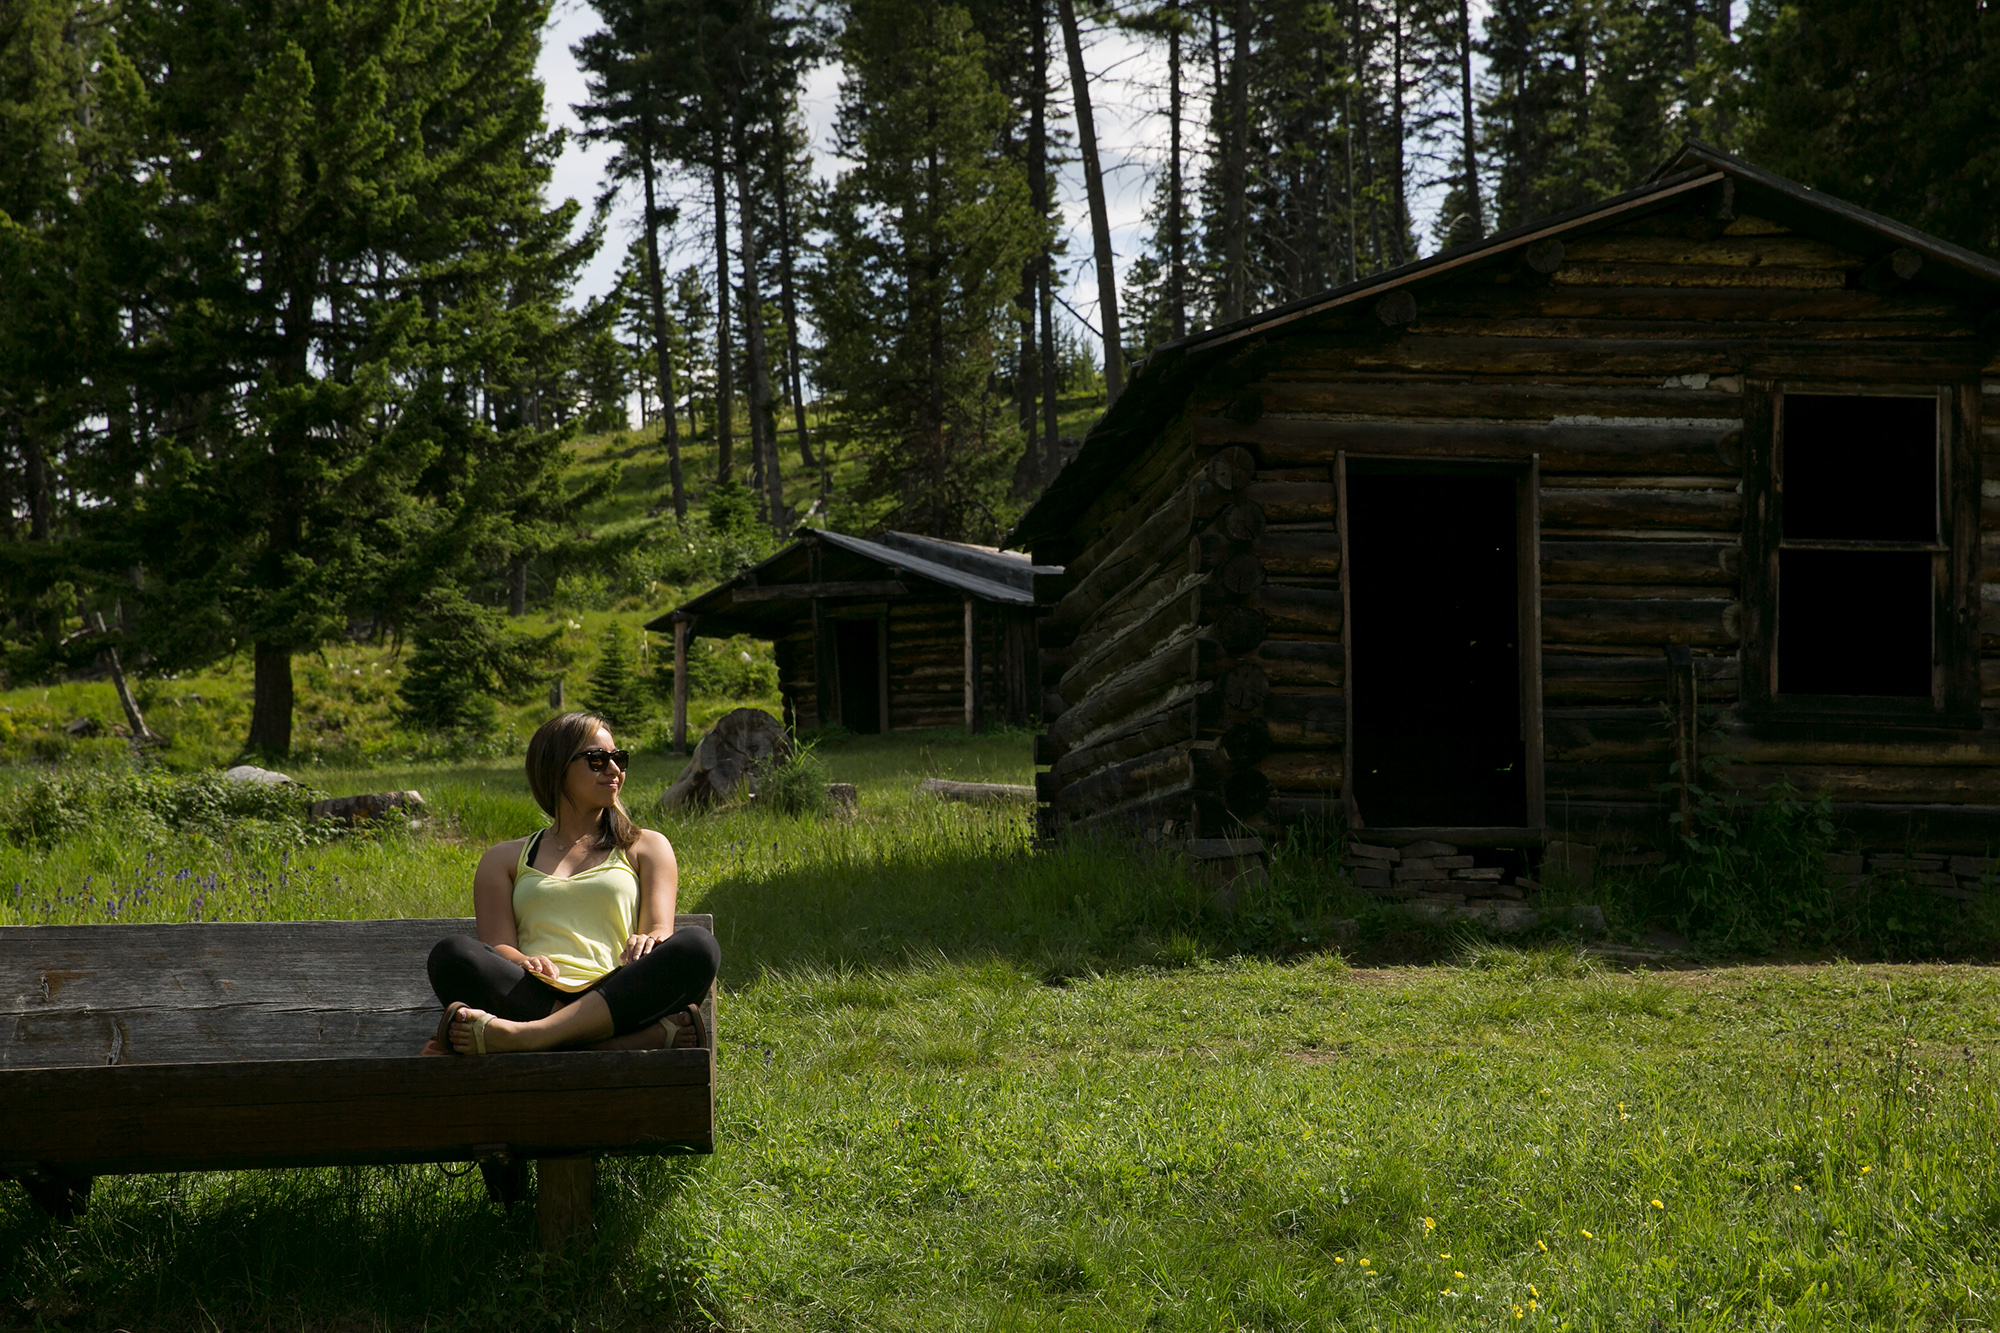 Britnee enjoys a break on a nice bench in the ghost town of Garnet, Montana.